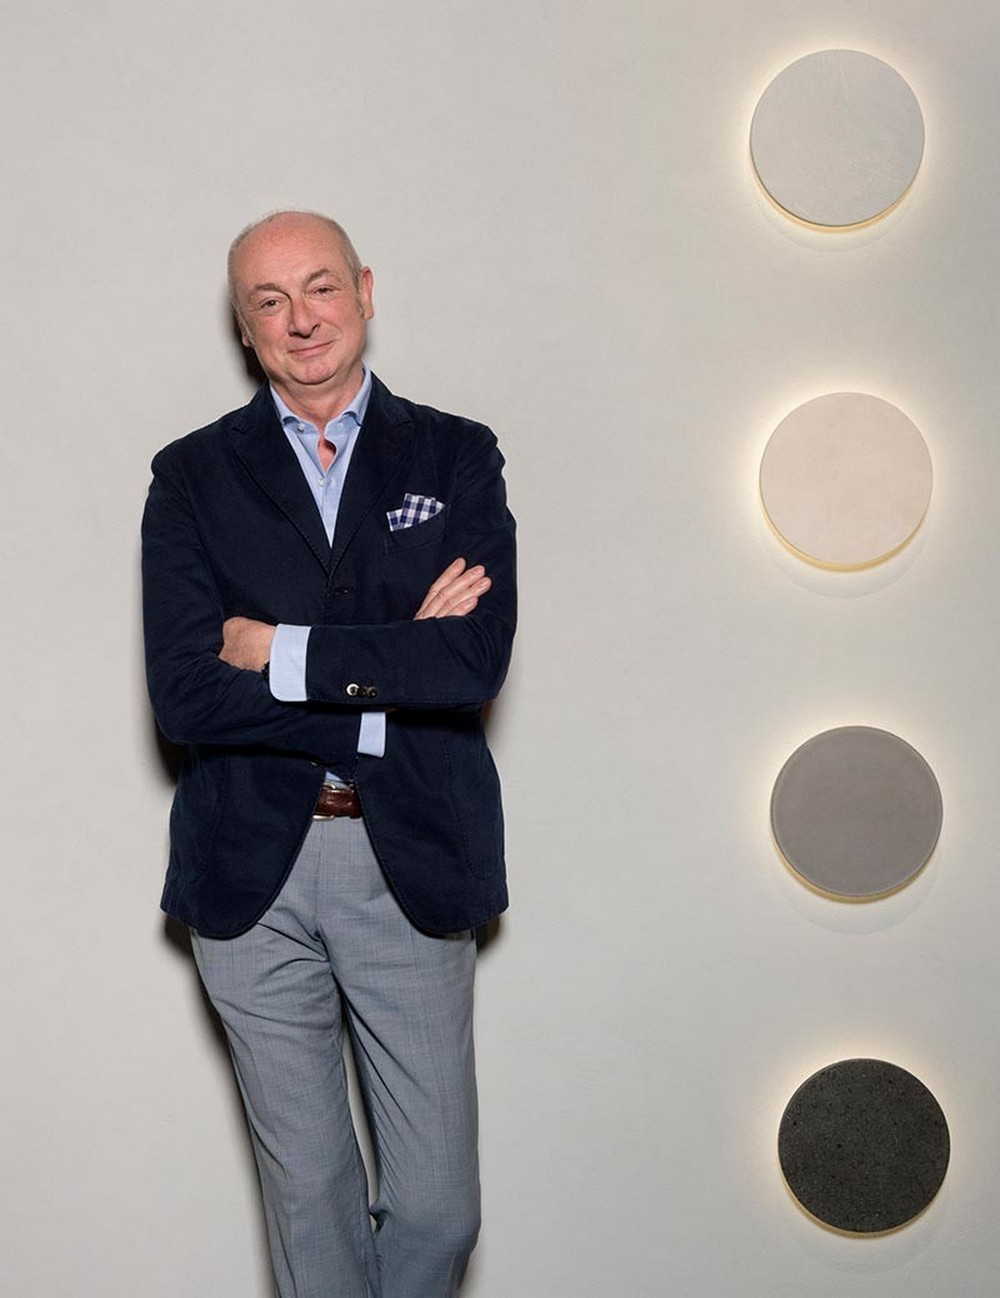 Best Interior Designers: See Who's In This Year's Top 100 (Part II) best interior designers Best Interior Designers: See Who's In This Year's Top 100 (Part II) Best Interior Designers See Whos In This Years Top 100 Part II 15